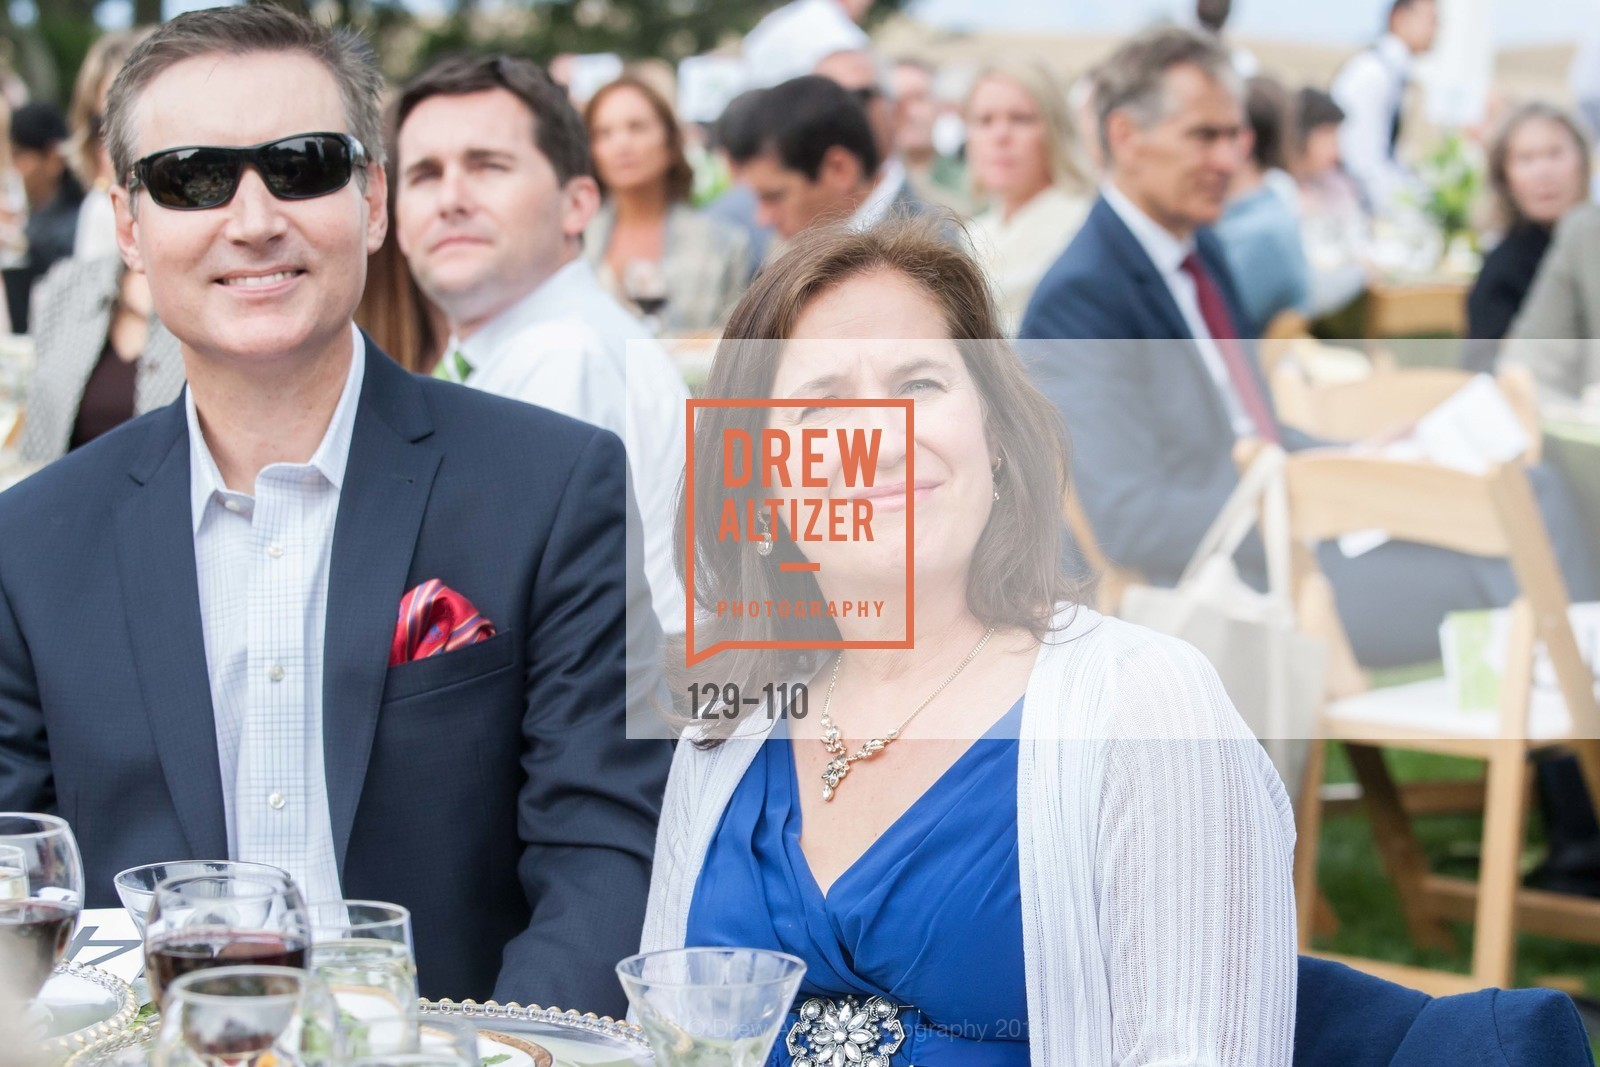 Extras, LYME AID 2015 Benefiting the Bay Area Lyme Foundation, May 16th, 2015, Photo,Drew Altizer, Drew Altizer Photography, full-service agency, private events, San Francisco photographer, photographer california